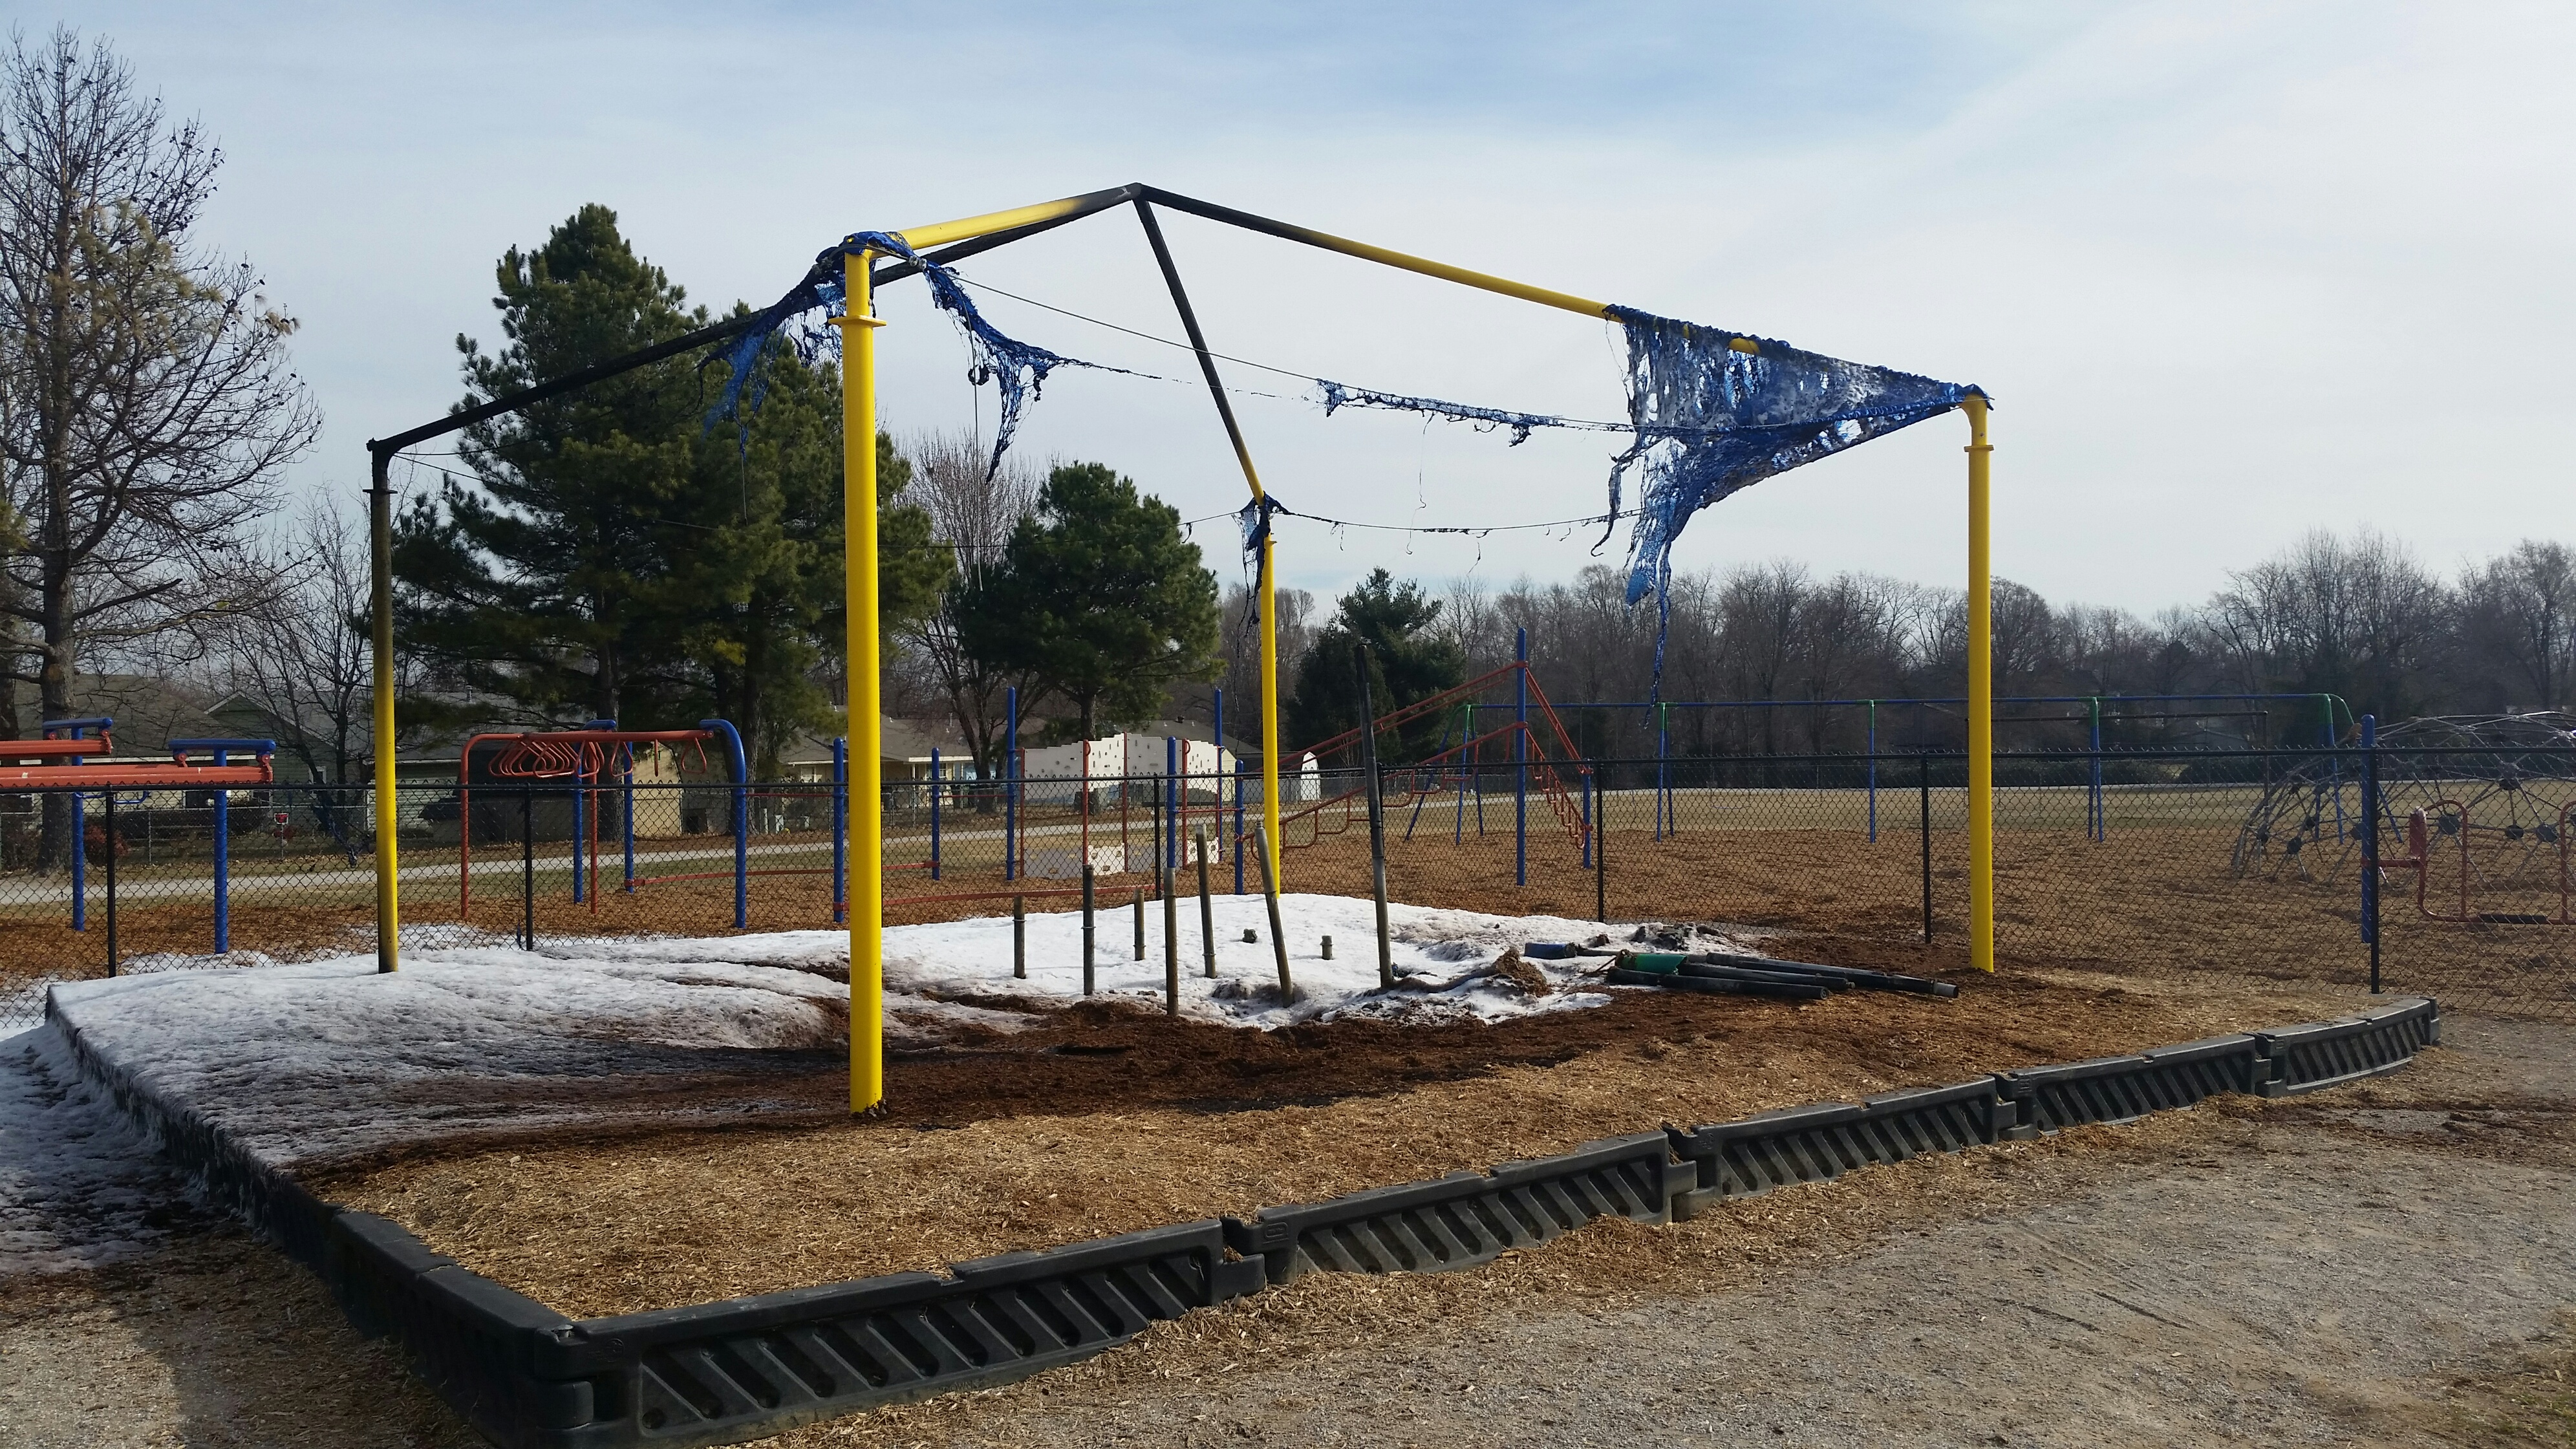 rogers playground fire 2